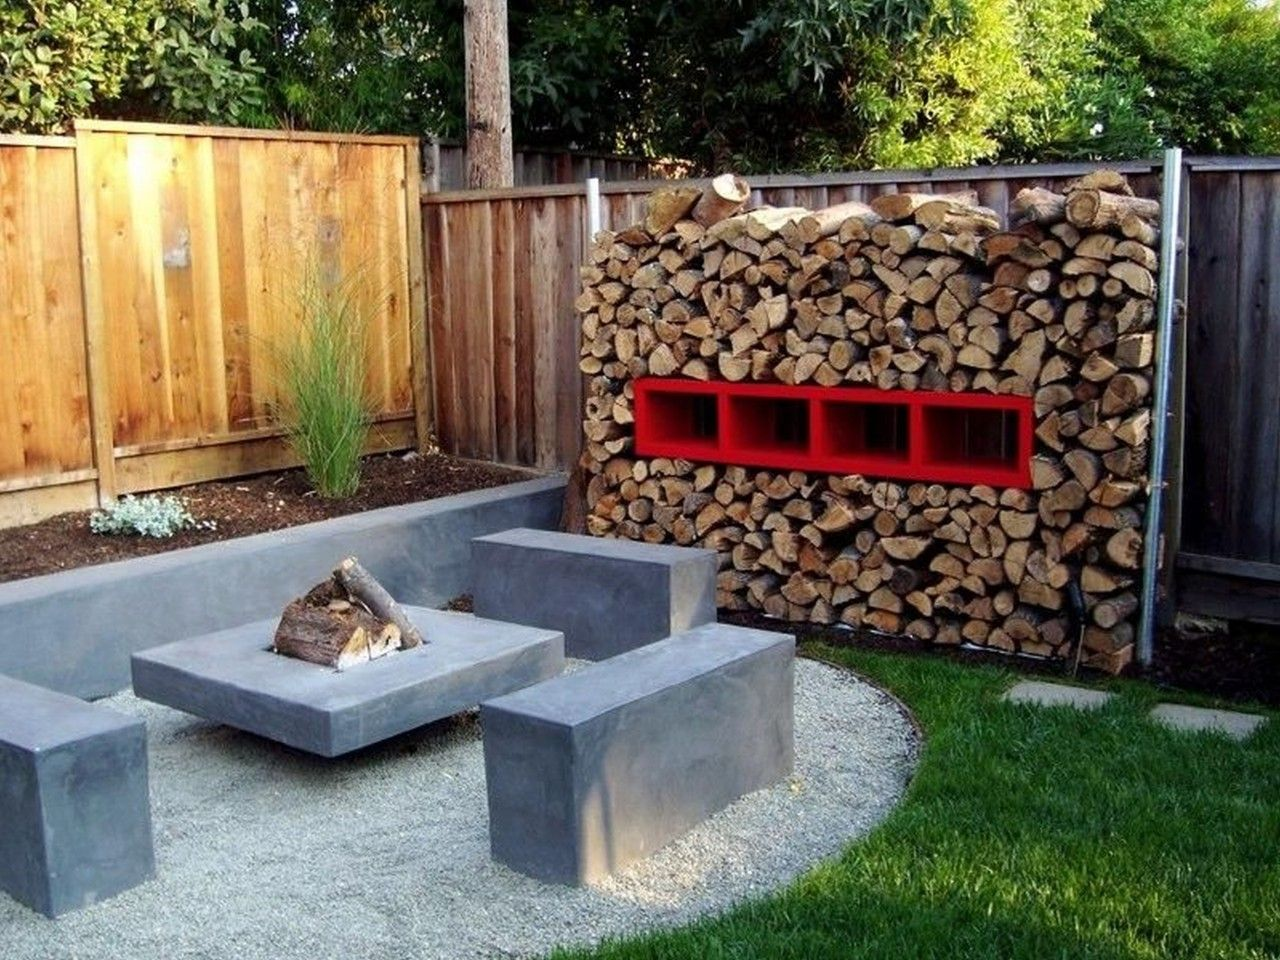 Agreeable Backyard Landscape Designs Pictures Complexion Entrancing How To Design My Marvelous Decoration Coloration Ideas For